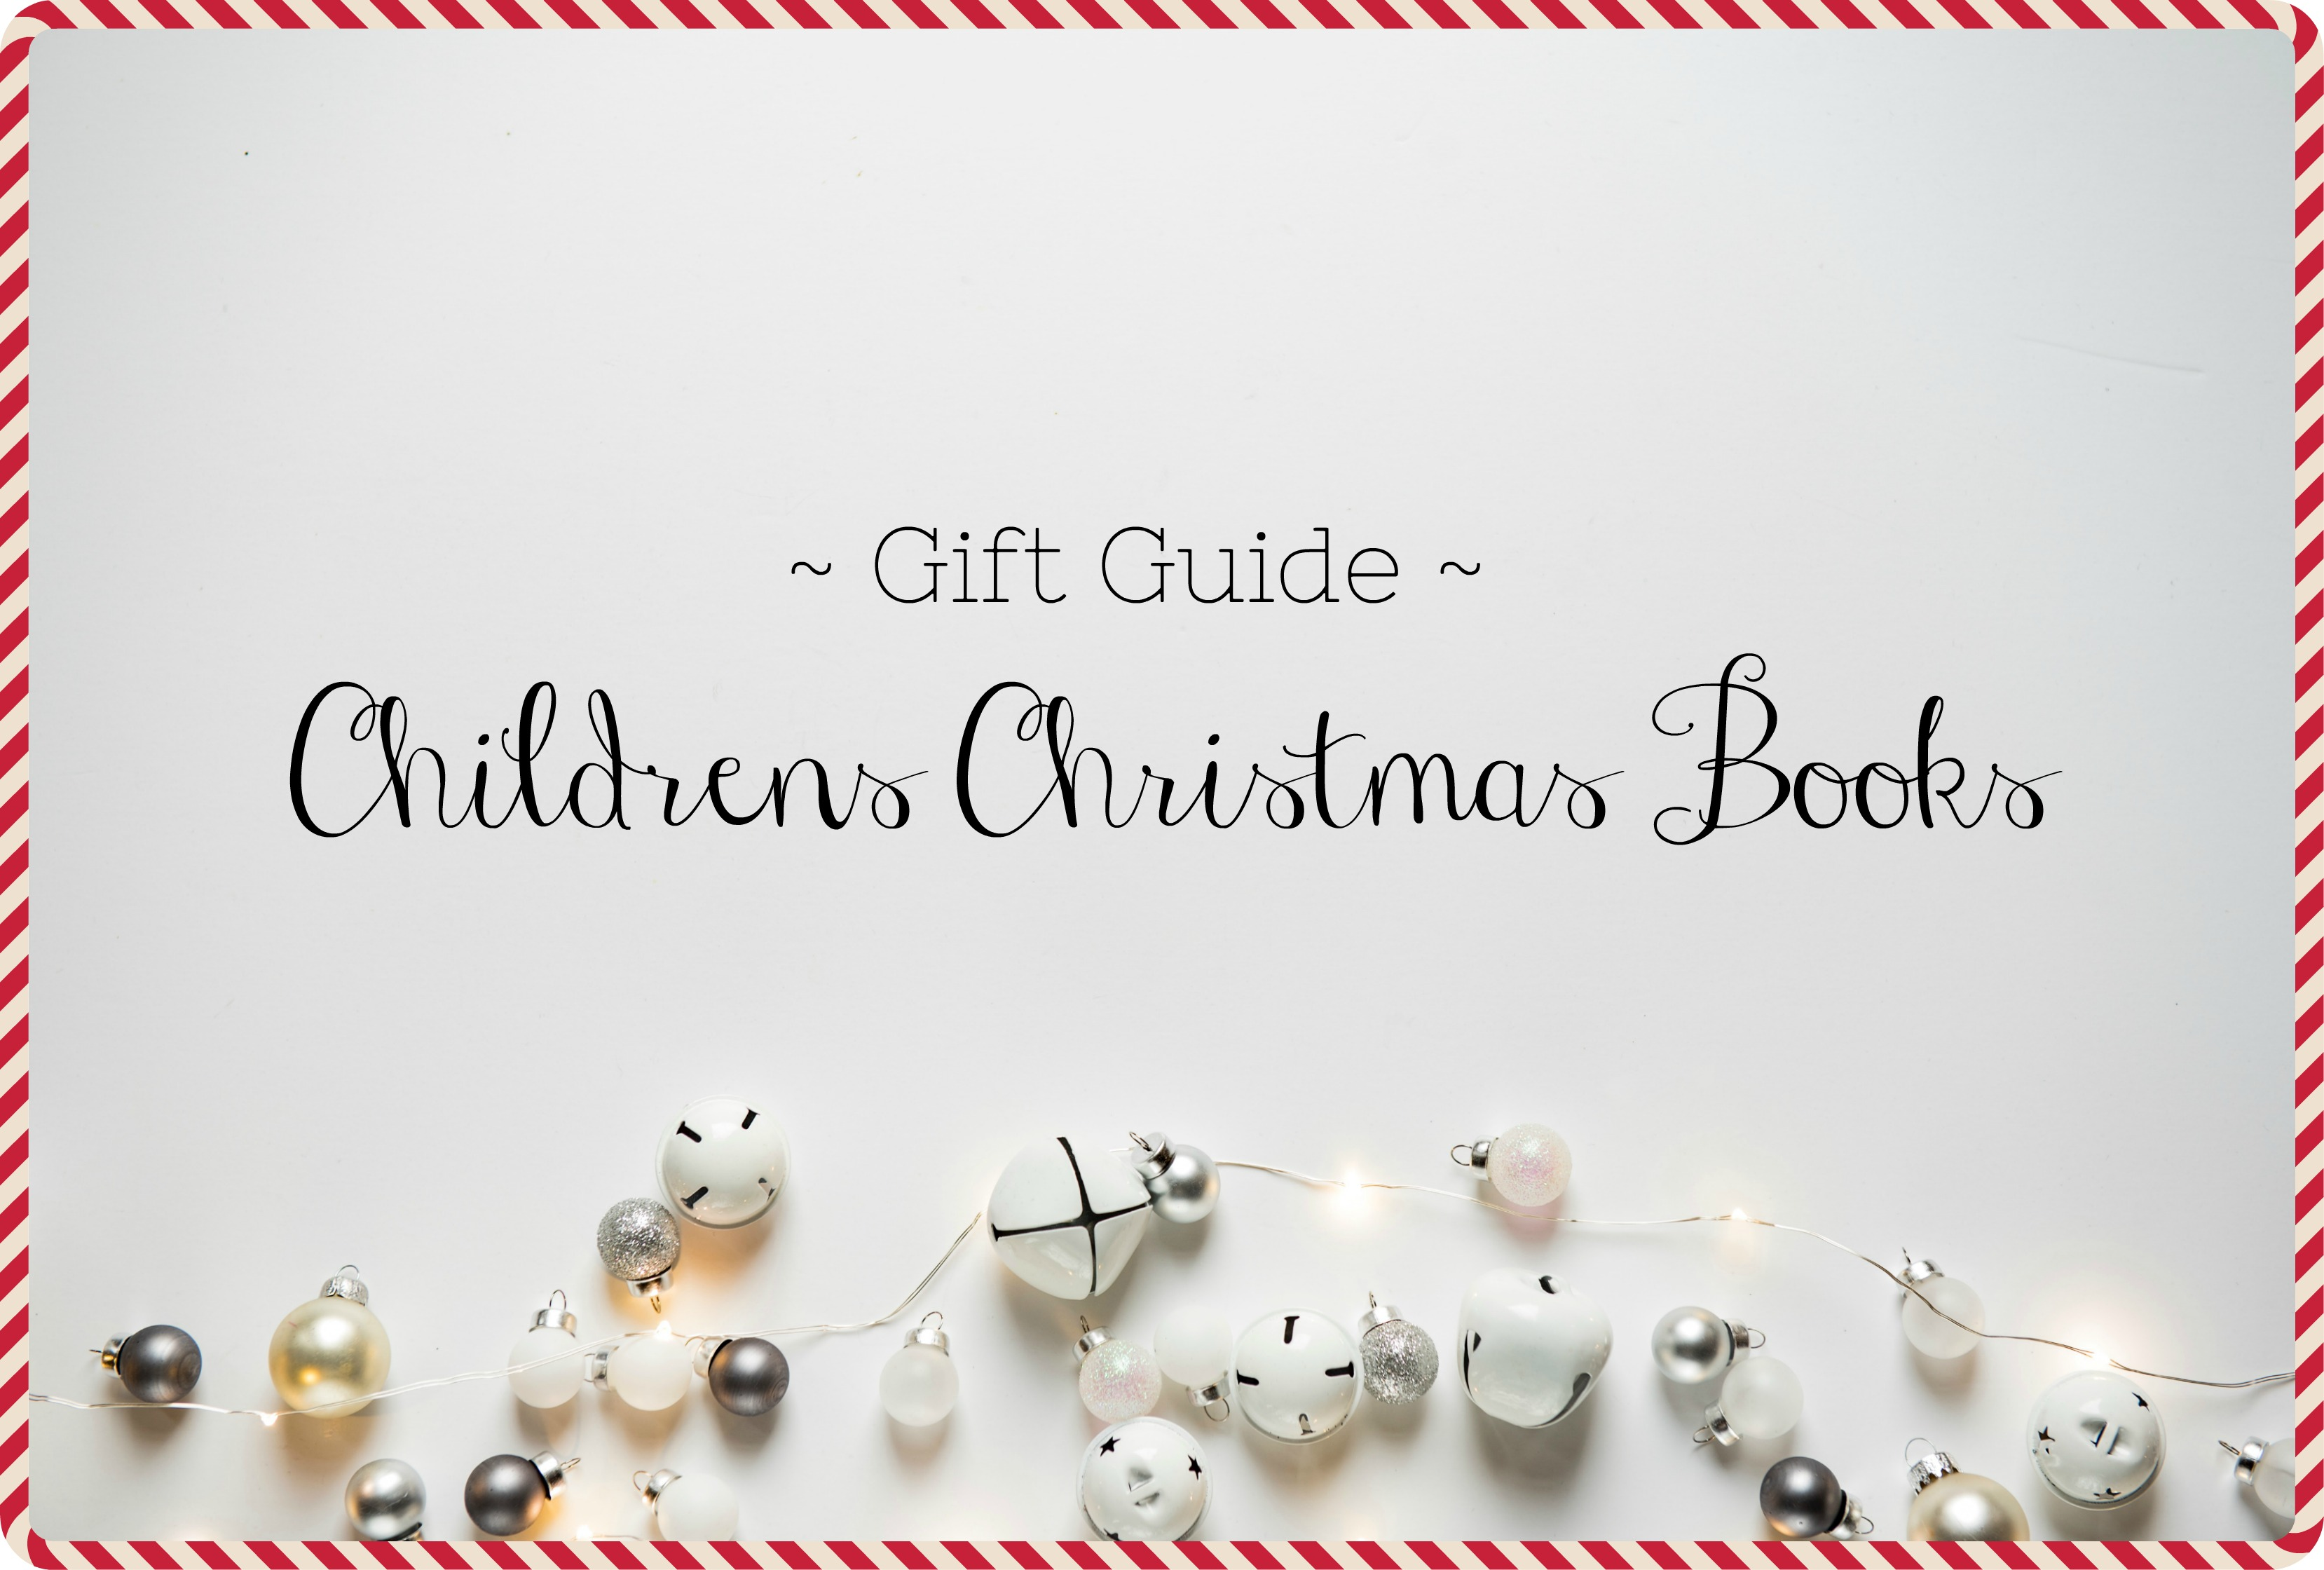 Christmas books title